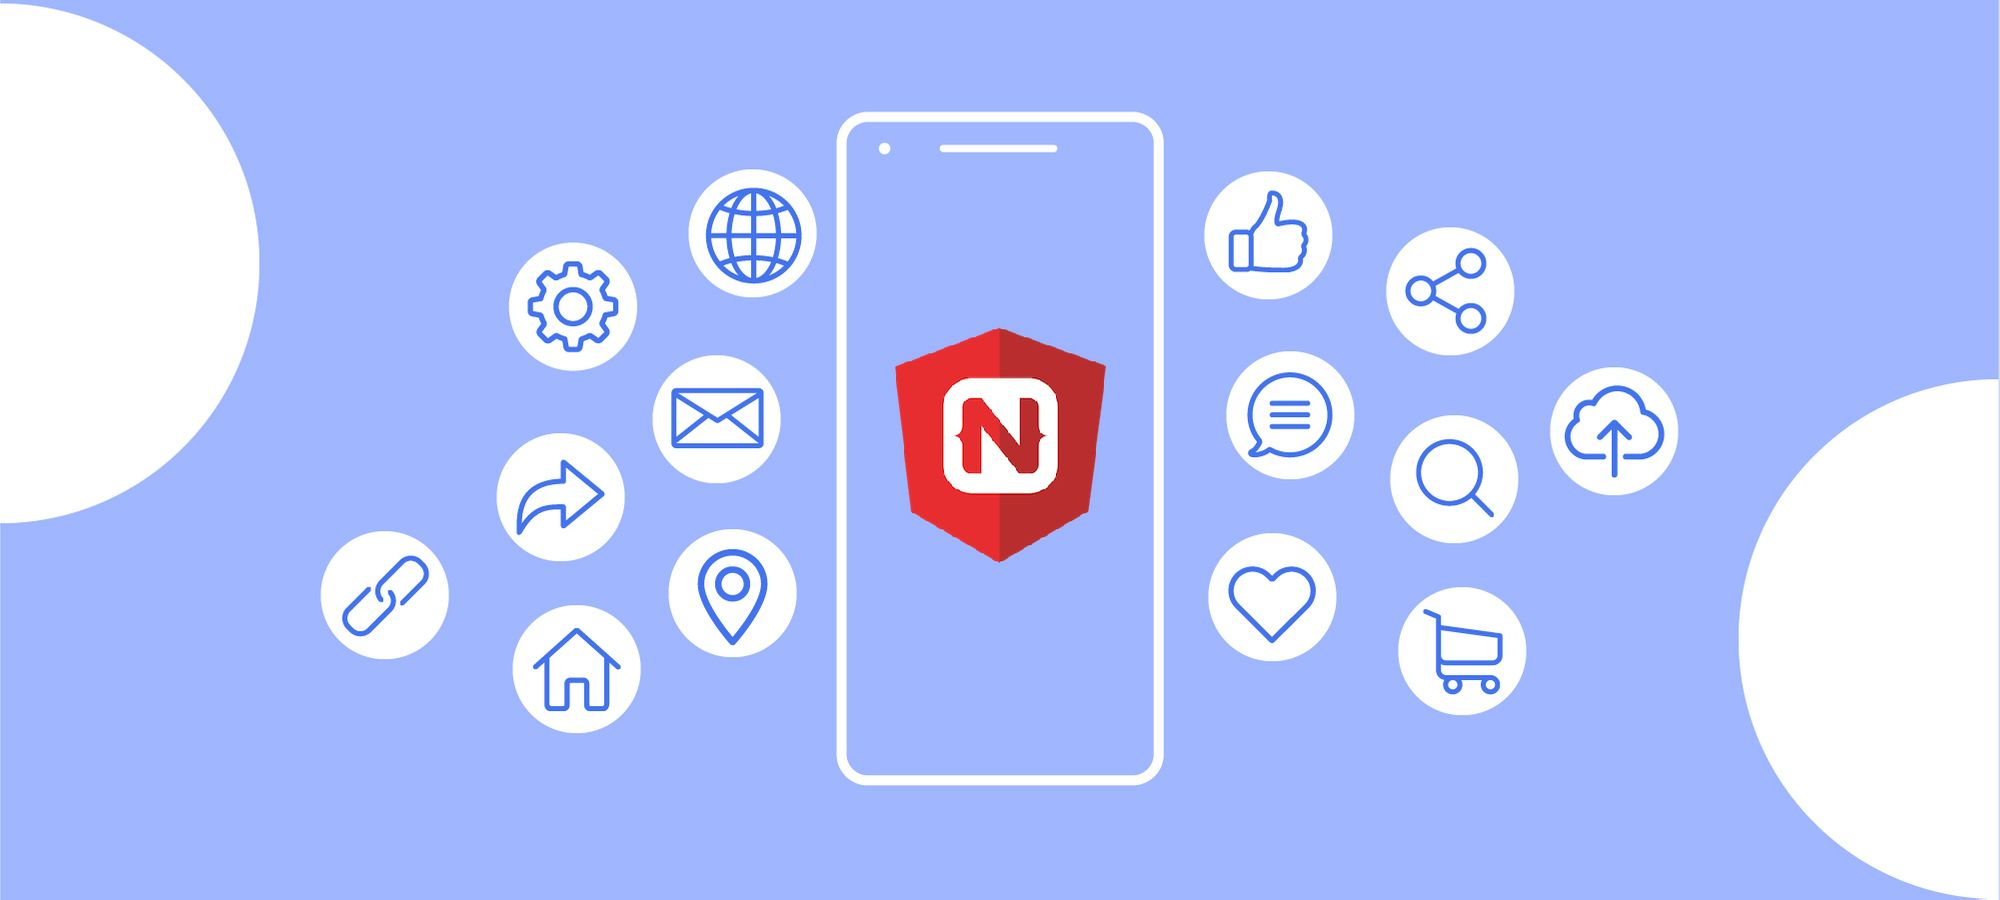 Native Android and iOS Apps with NativeScript and Angular 6